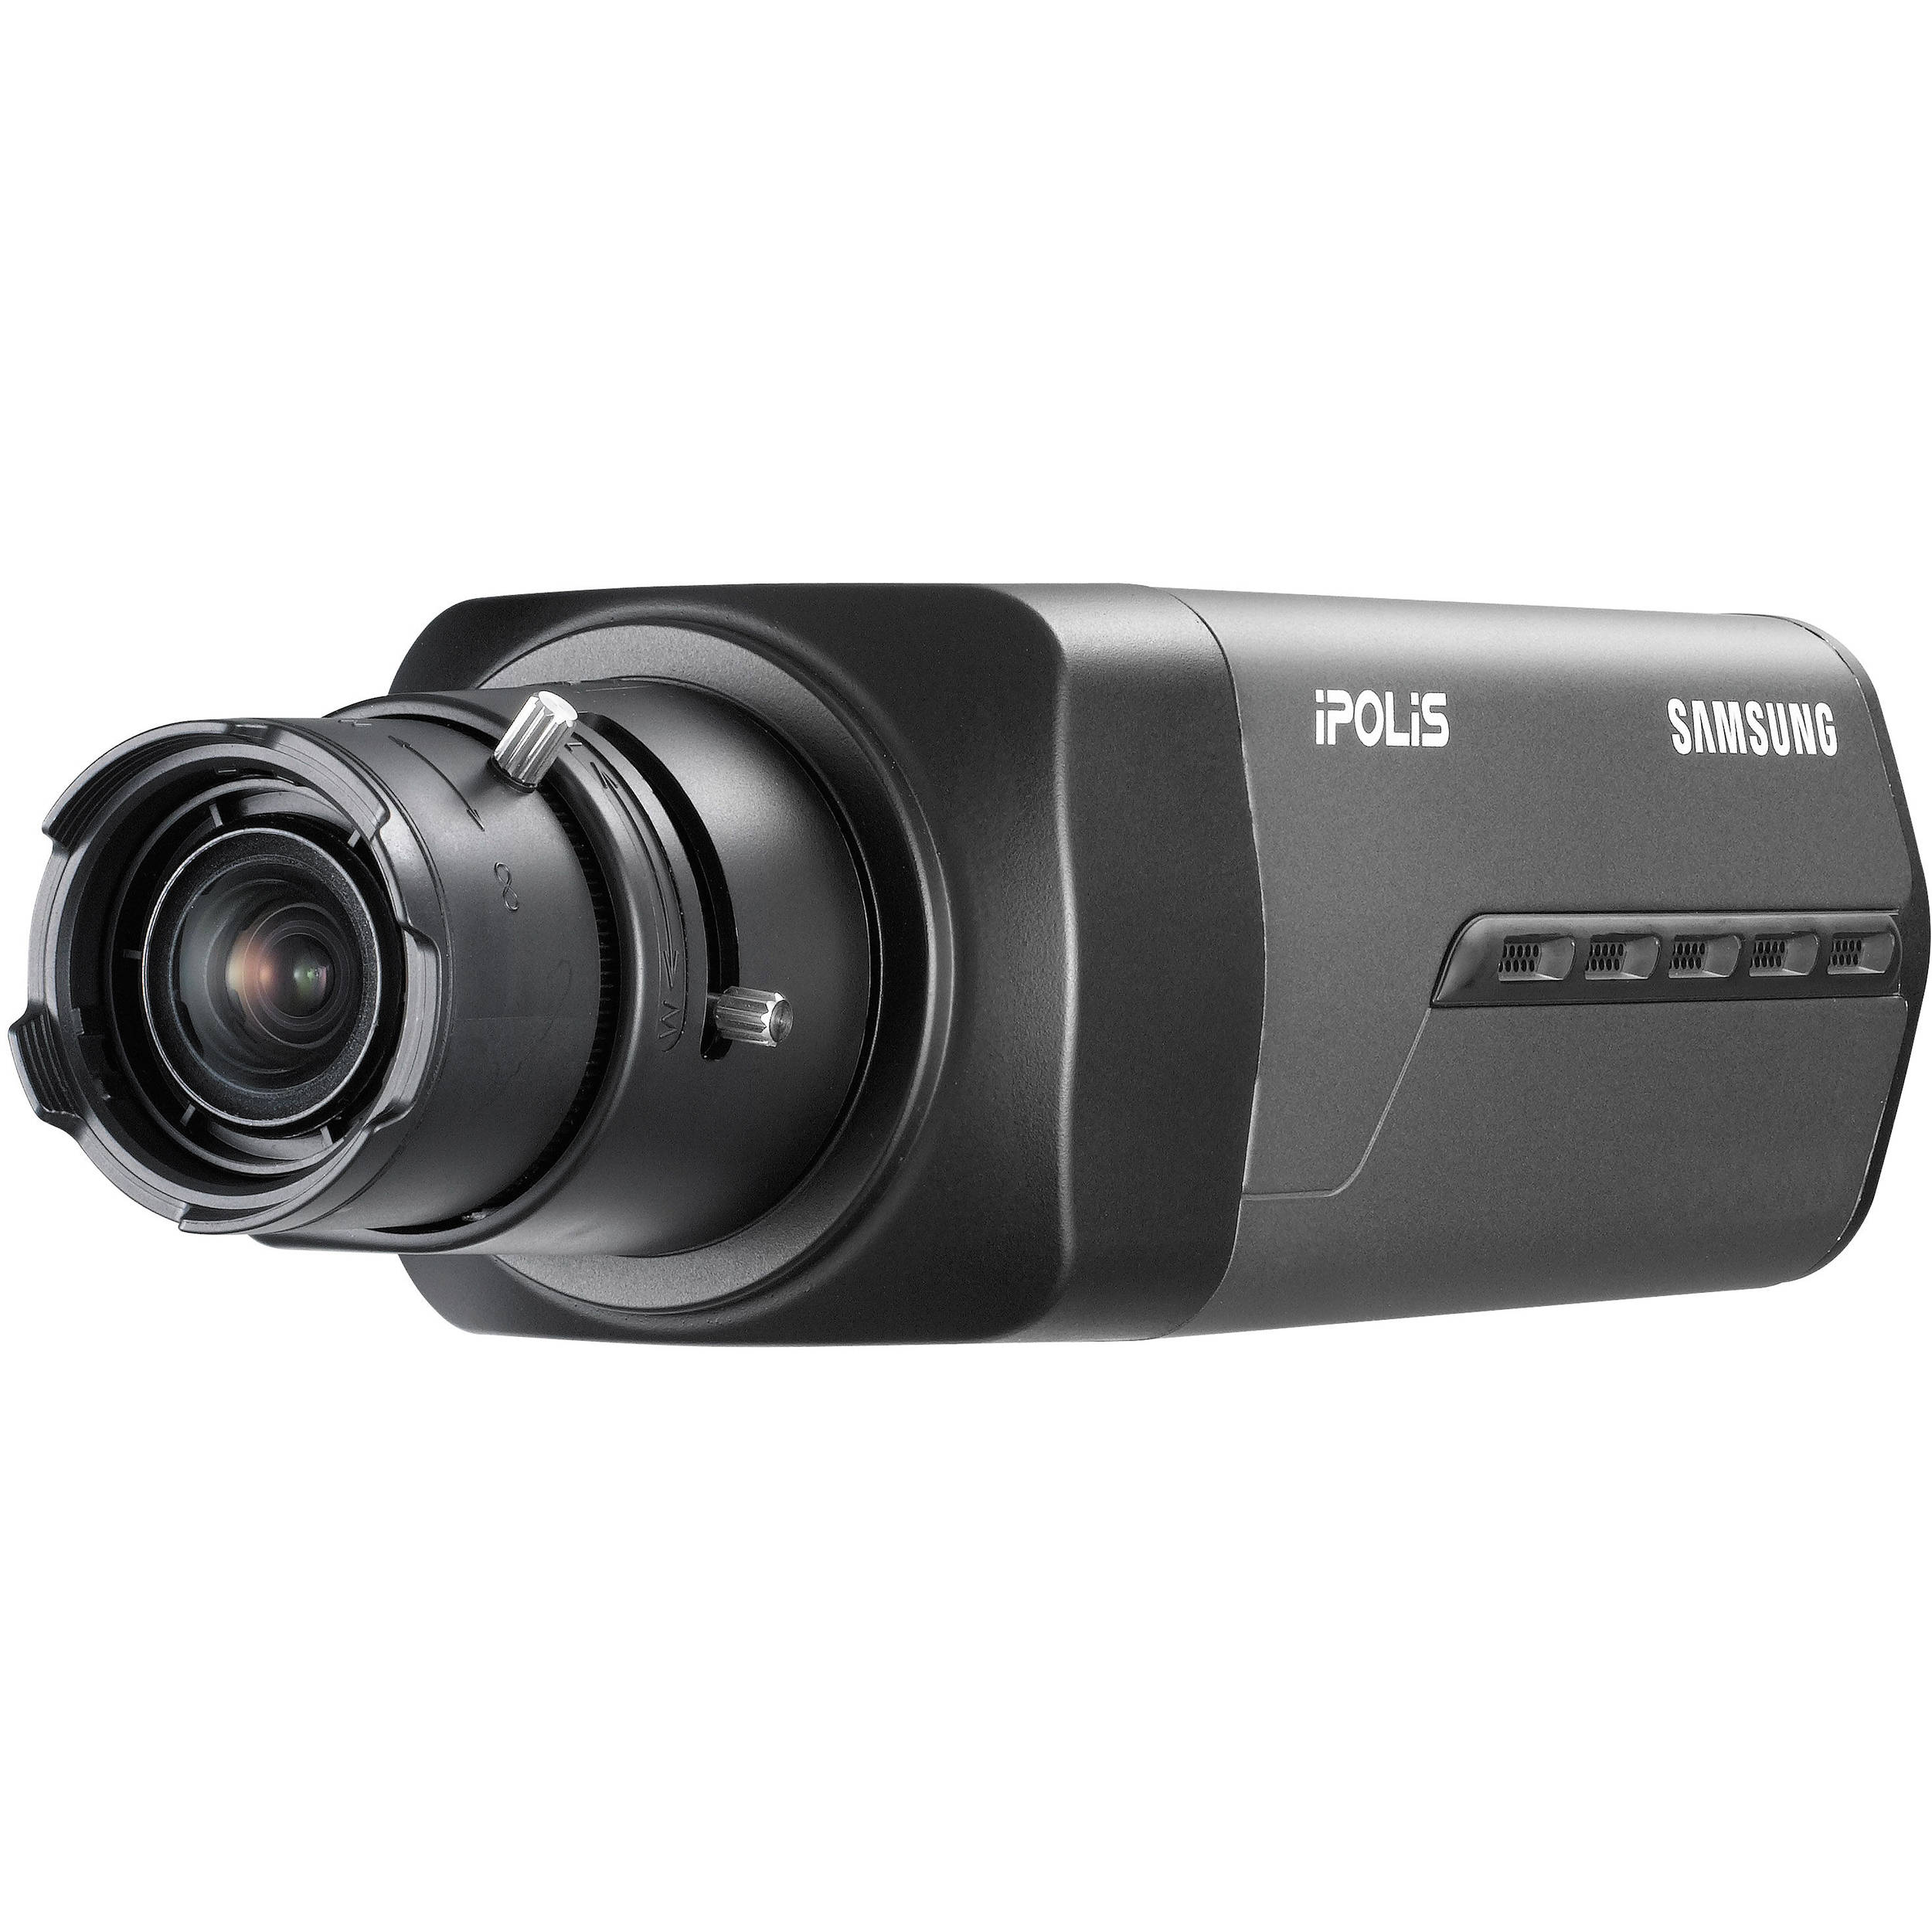 Samsung SNB-7002 Network Camera Driver Download